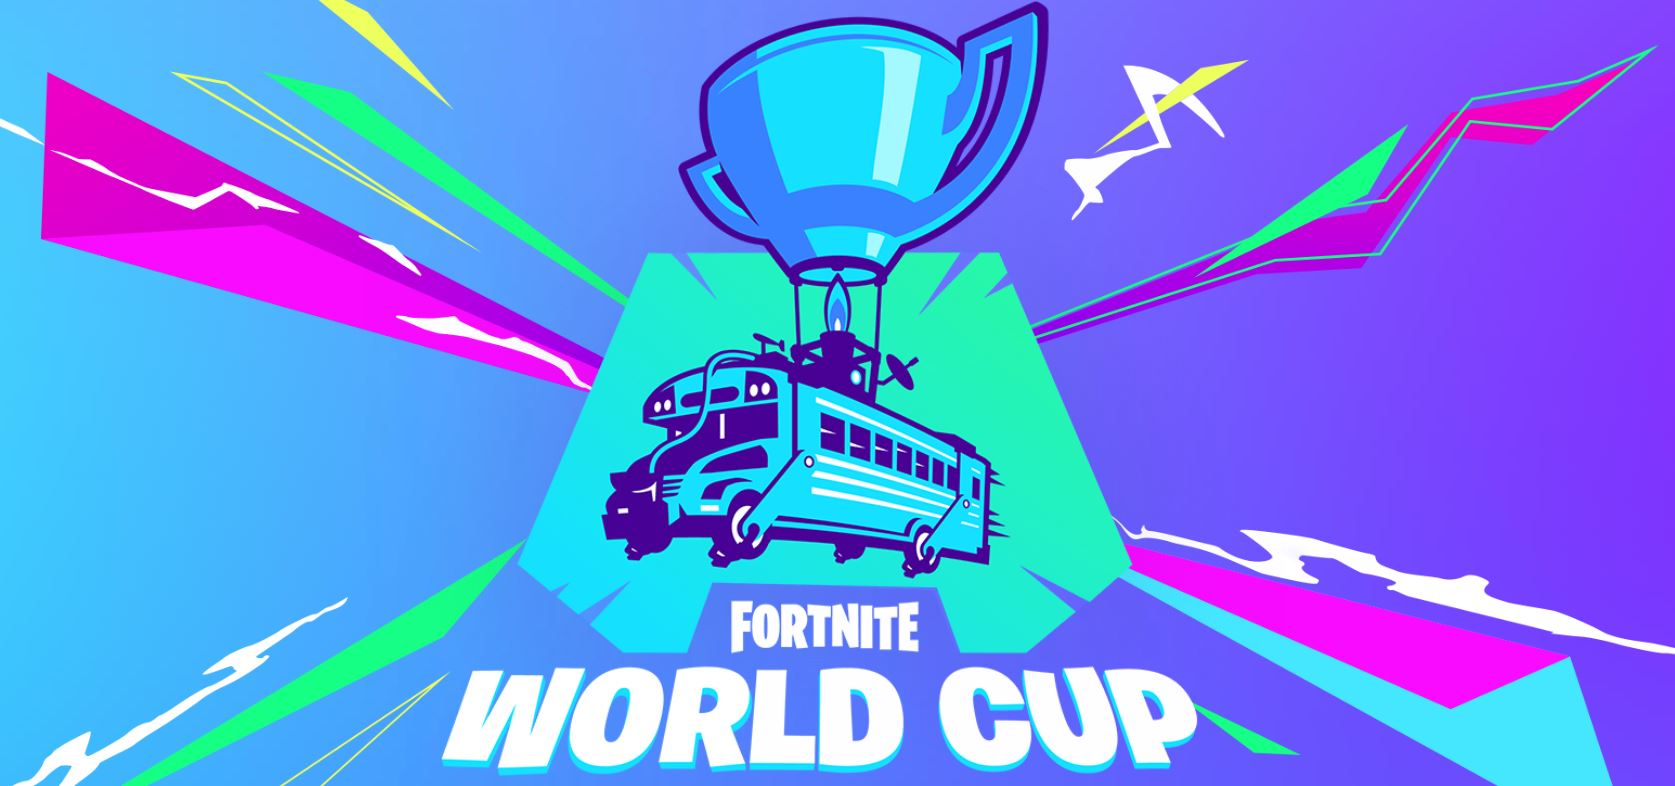 fortnite world cup logo